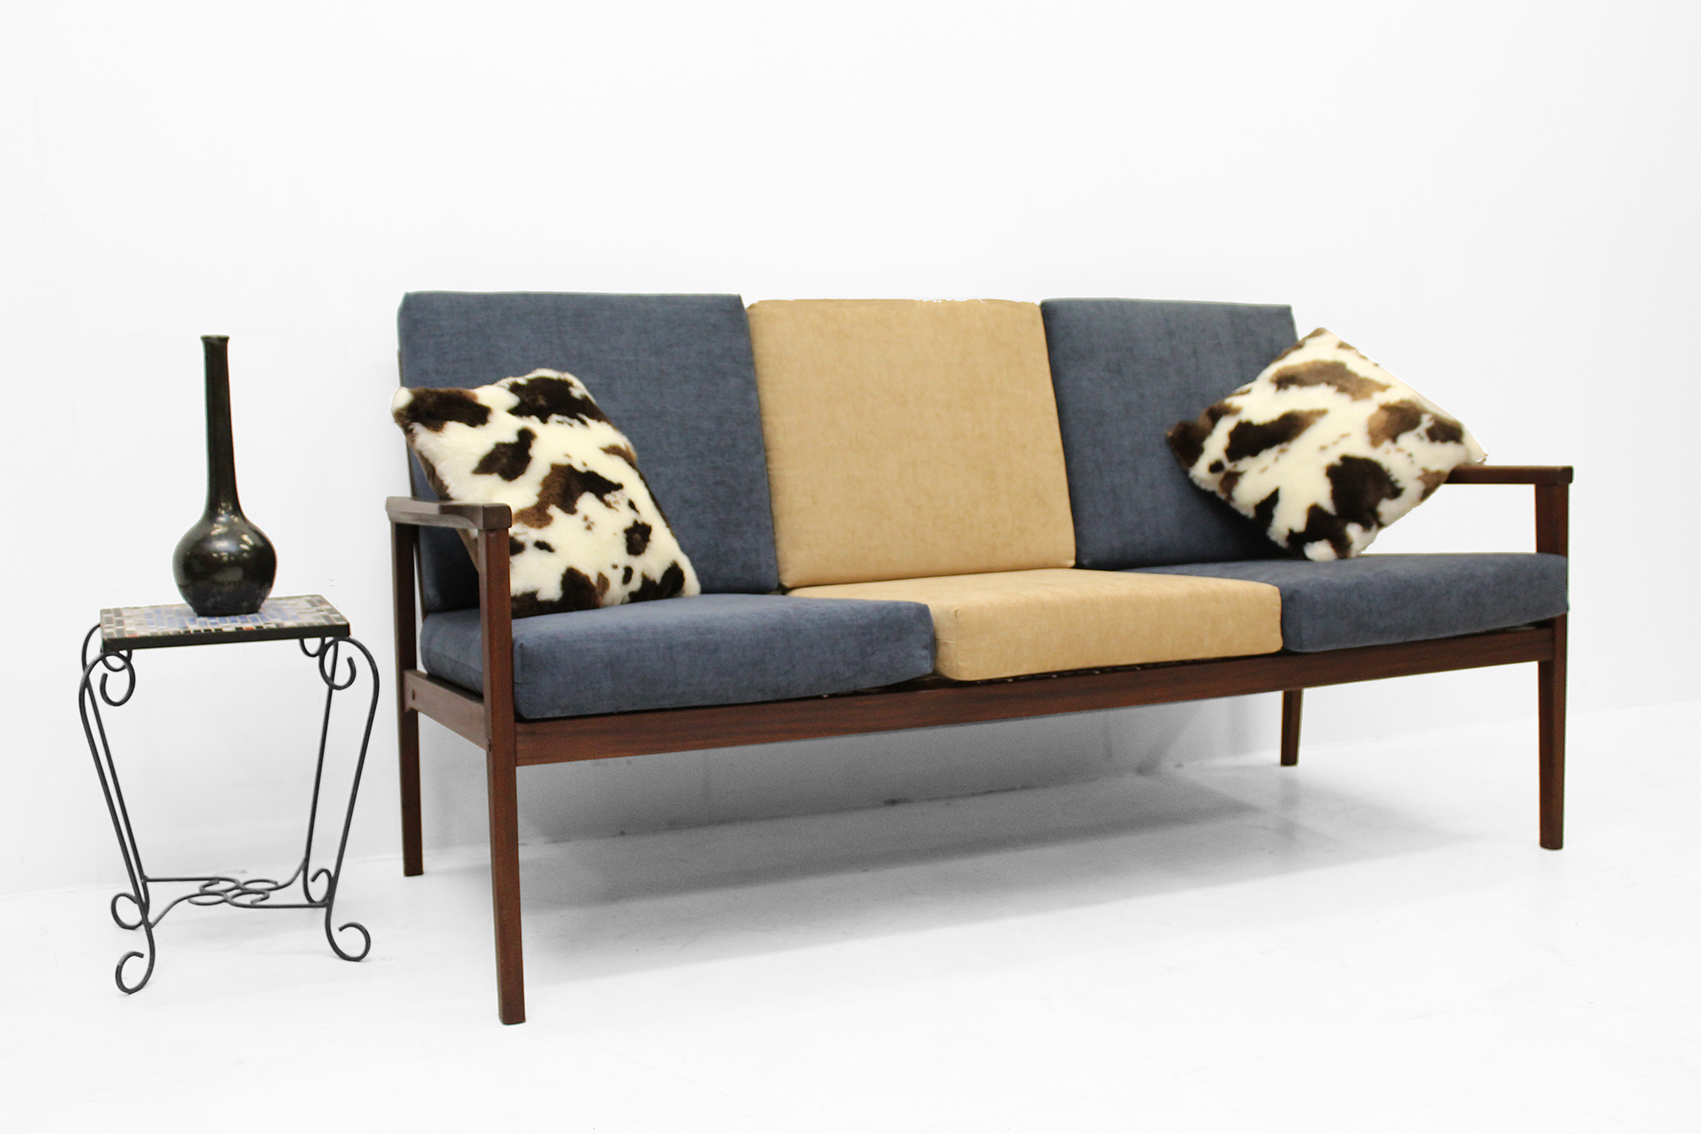 Fauteuil Sixties Too Late Sold 3 Zit Fauteuil Sixties In 2 Kleuren